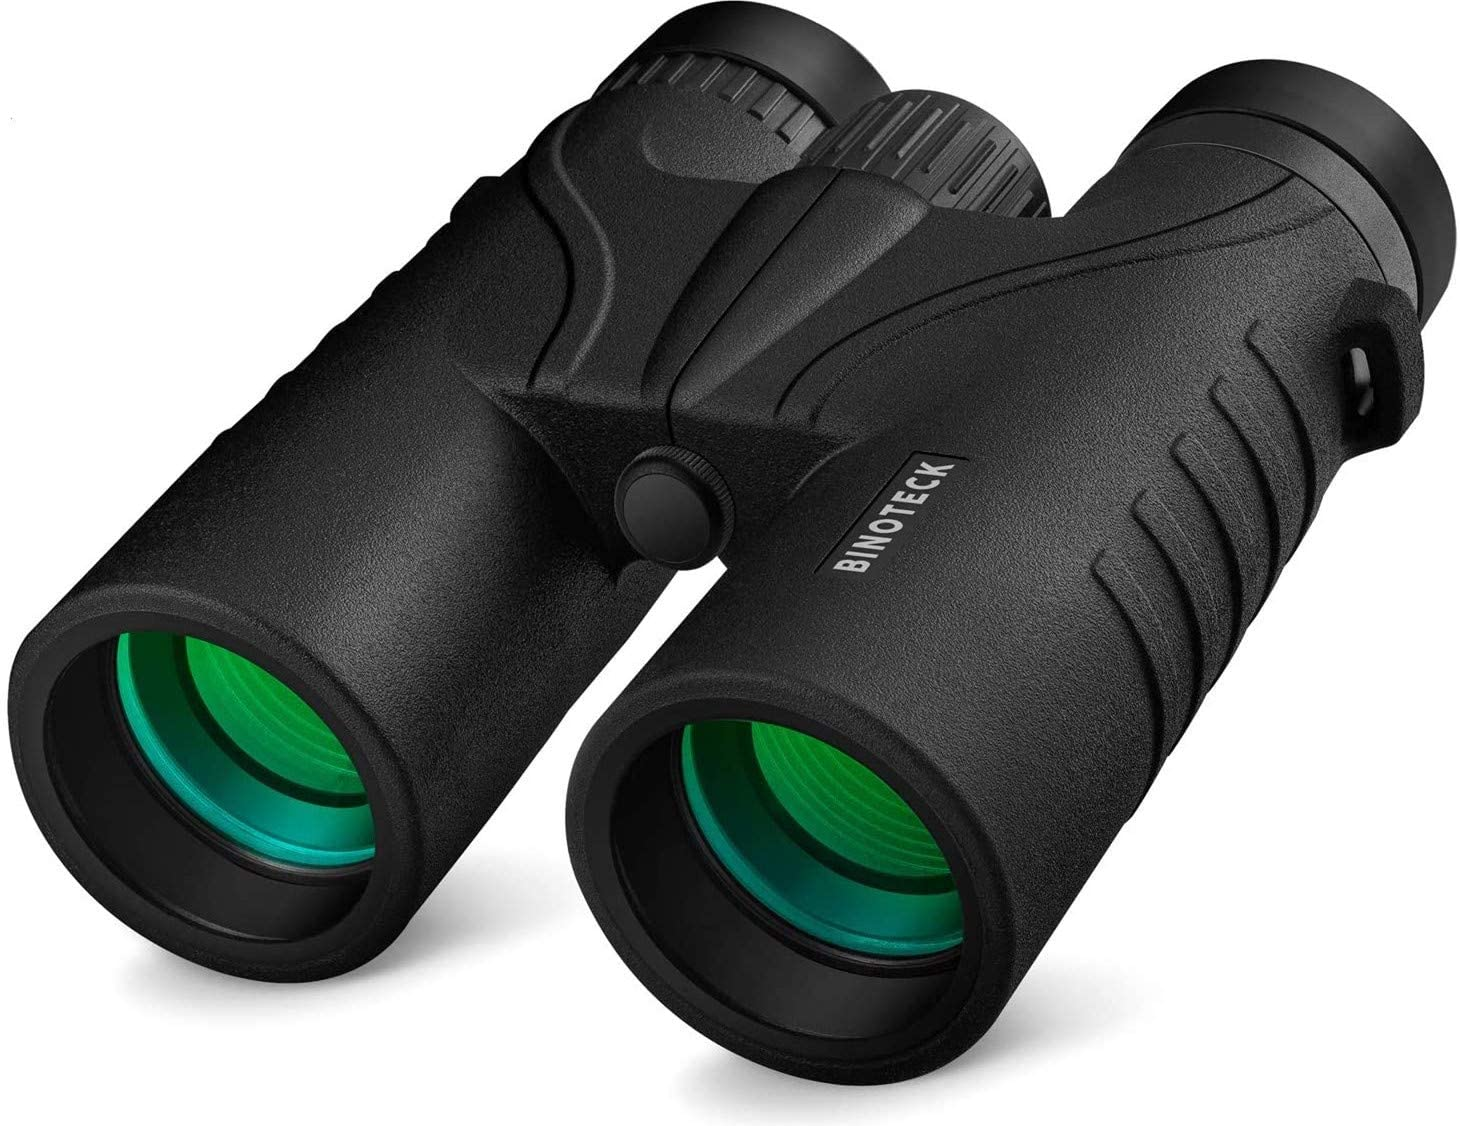 Binoteck 10×42 Binoculars for Adults – Professional HD Roof BAK4 Prism Lens Binoculars for Bird Watching, Hunting, Travel, Sports, Opera, Concert, with Carrying Bag 1.0 lbs